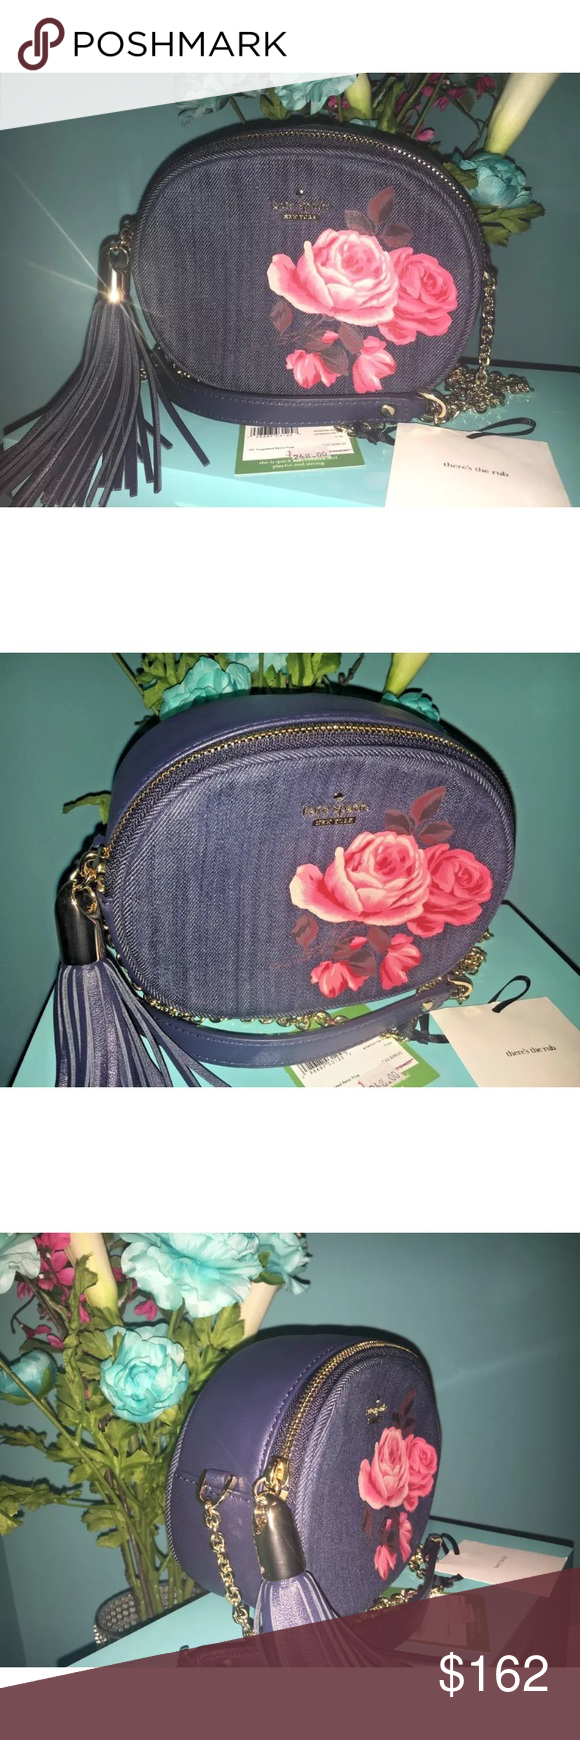 af5c2f1292 Kate Spade Denim 🌹Rose Tinley Crossbody Bag Brand New with Tags Kate Spade  Emerson Place